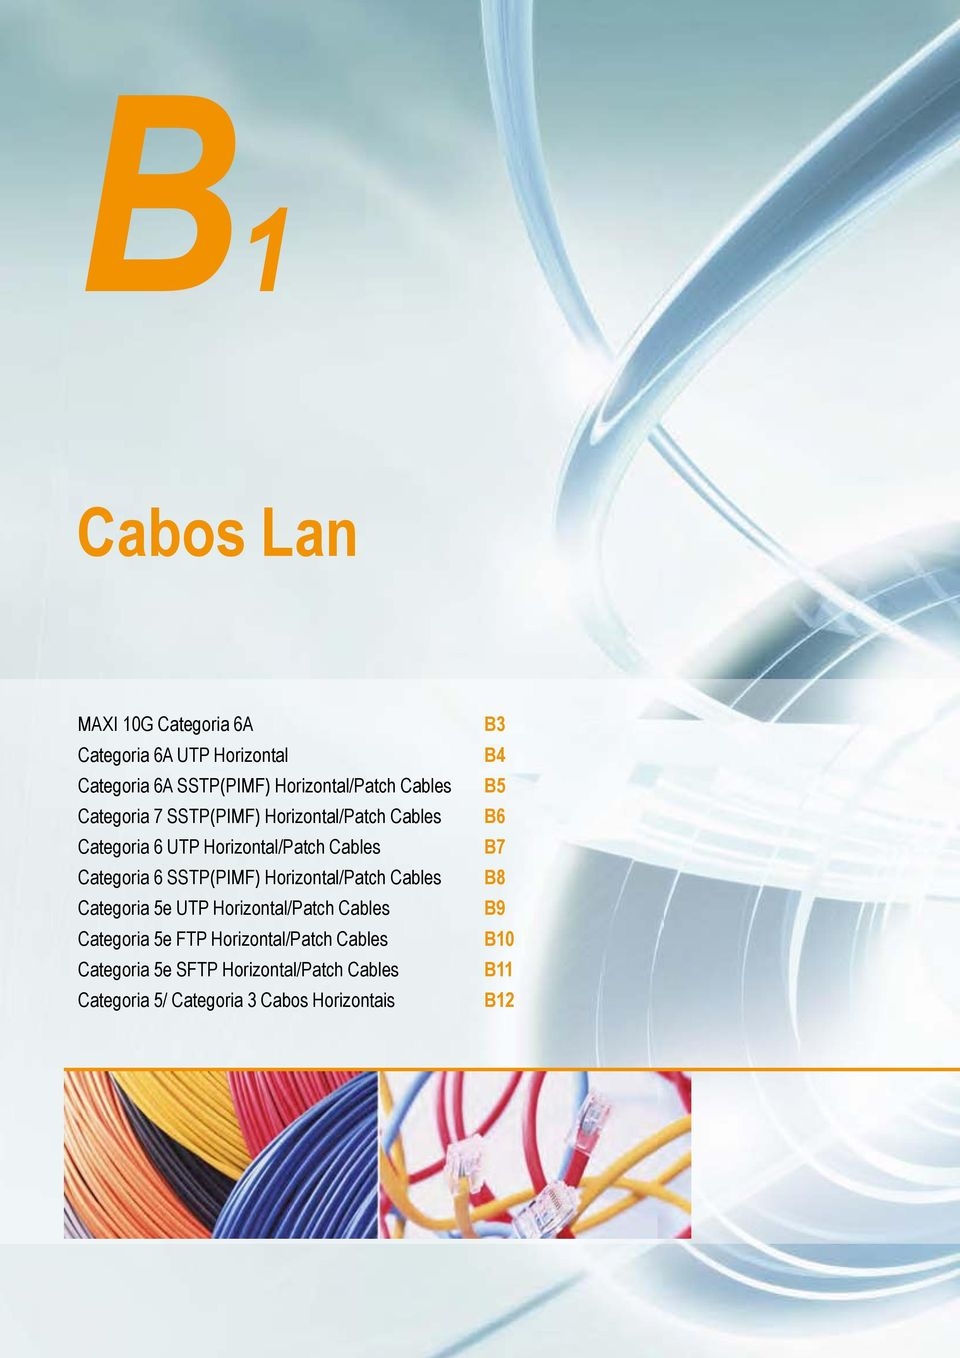 Horizontal/Patch Cables Categoria 5e UTP Horizontal/Patch Cables Categoria 5e FTP Horizontal/Patch Cables